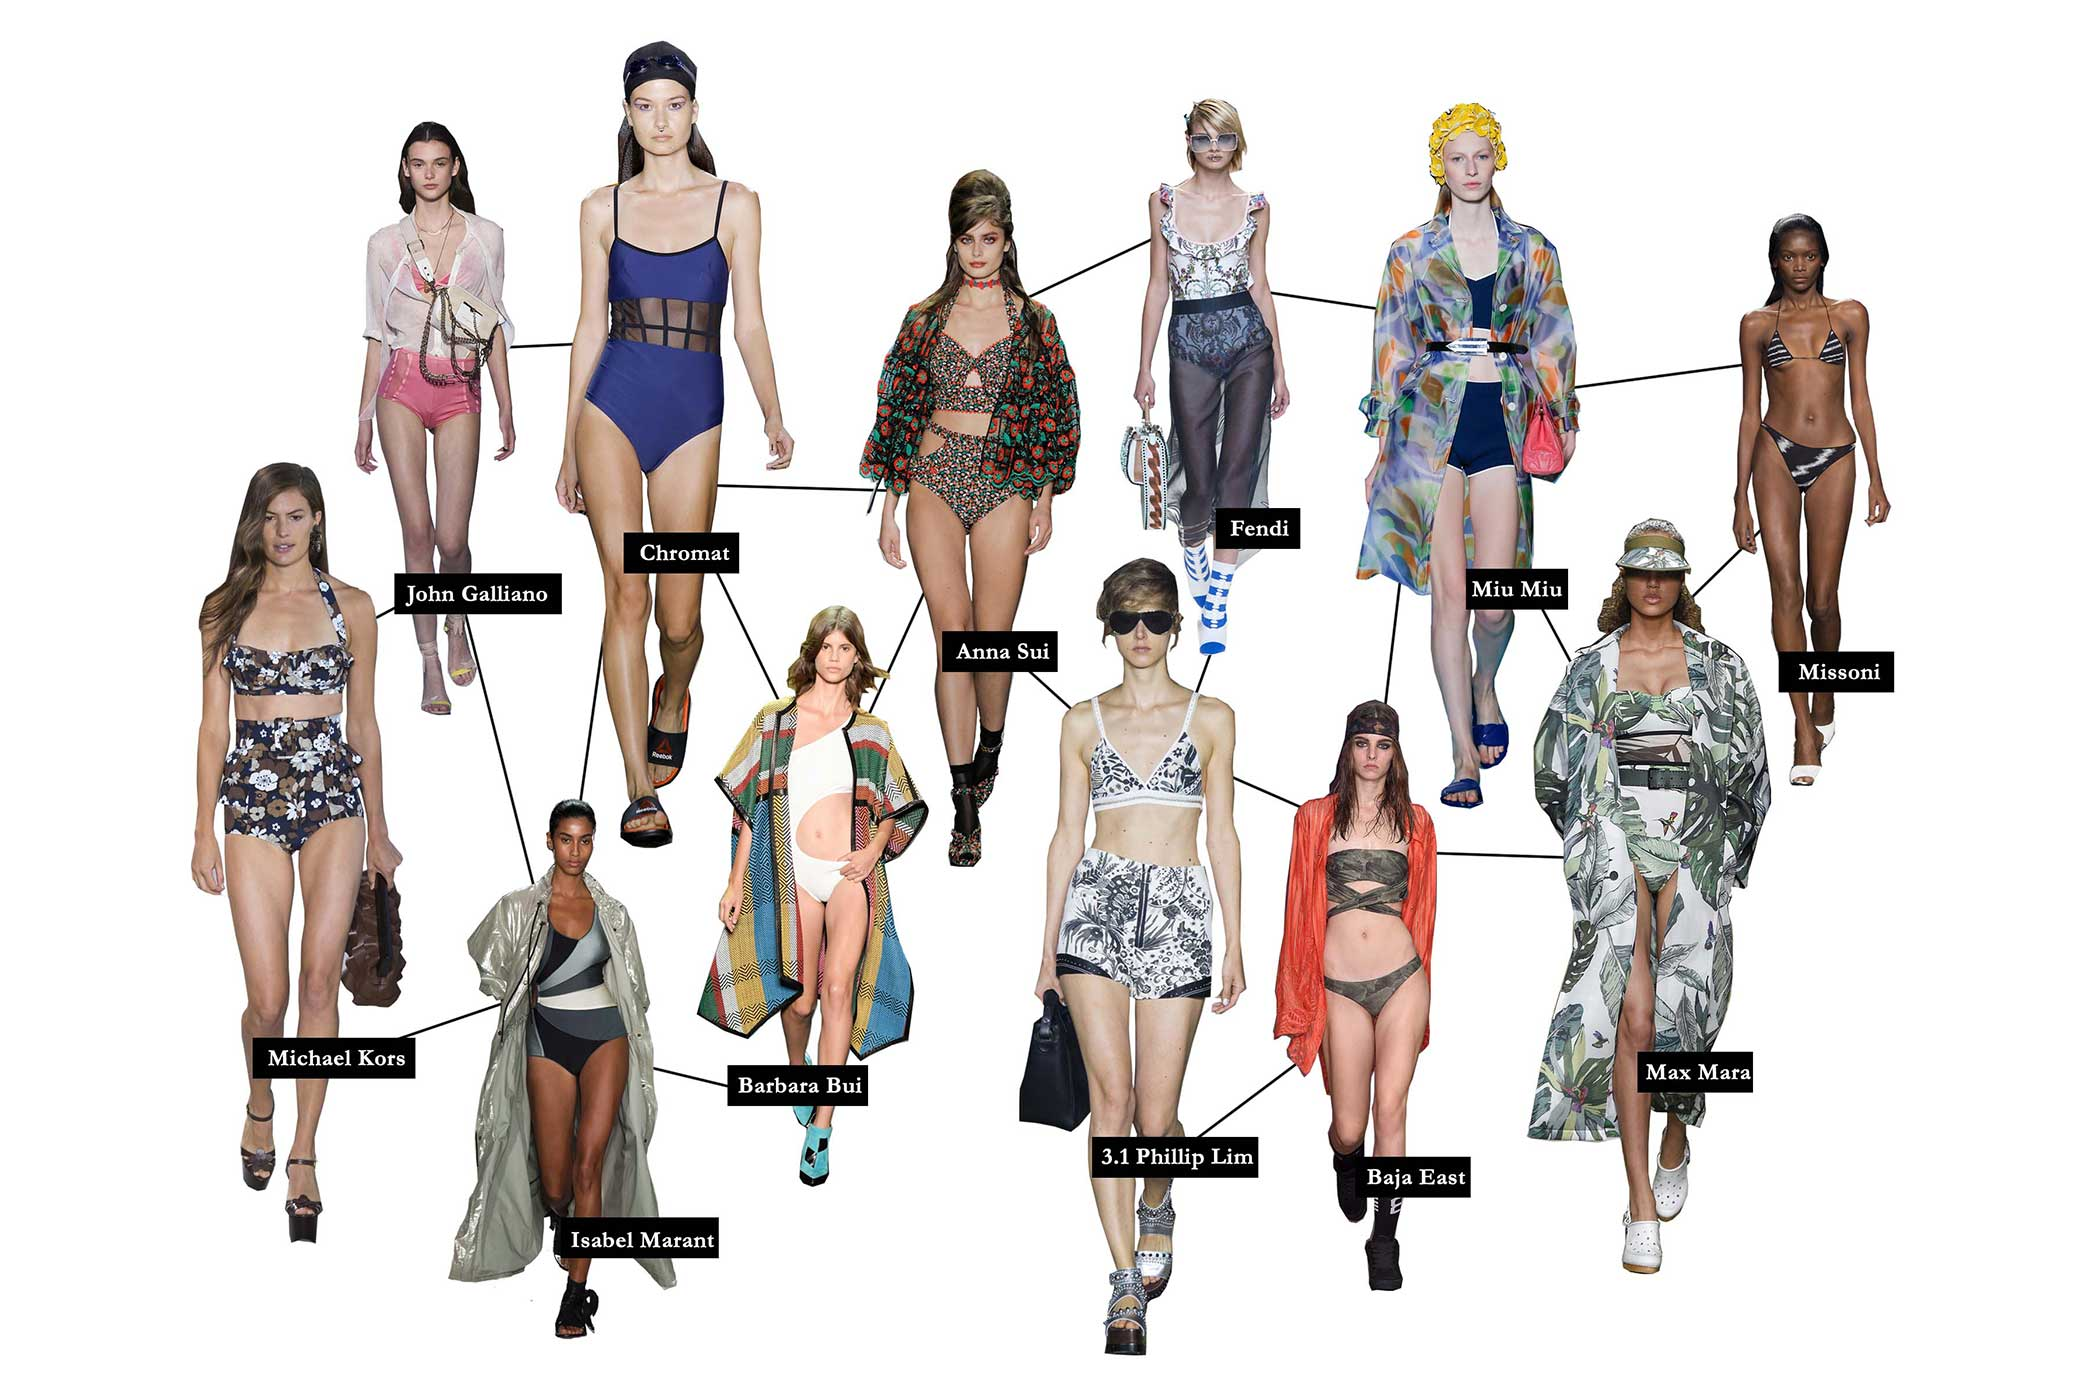 Spring / Summer'17 trends - Left to Right: Gucci, Fendi, Louis Vuitton, Bottega Veneta, Stella McCartney, Alexander Wang, Tibi, Balenciaga, Balmain, Proenza Schouler, Louis Vuitton, Christian Dior | Fashion magazine | Fashion magazine in India | Online fashion magazine | Online fashion magazine in India | Indian fashion magazine